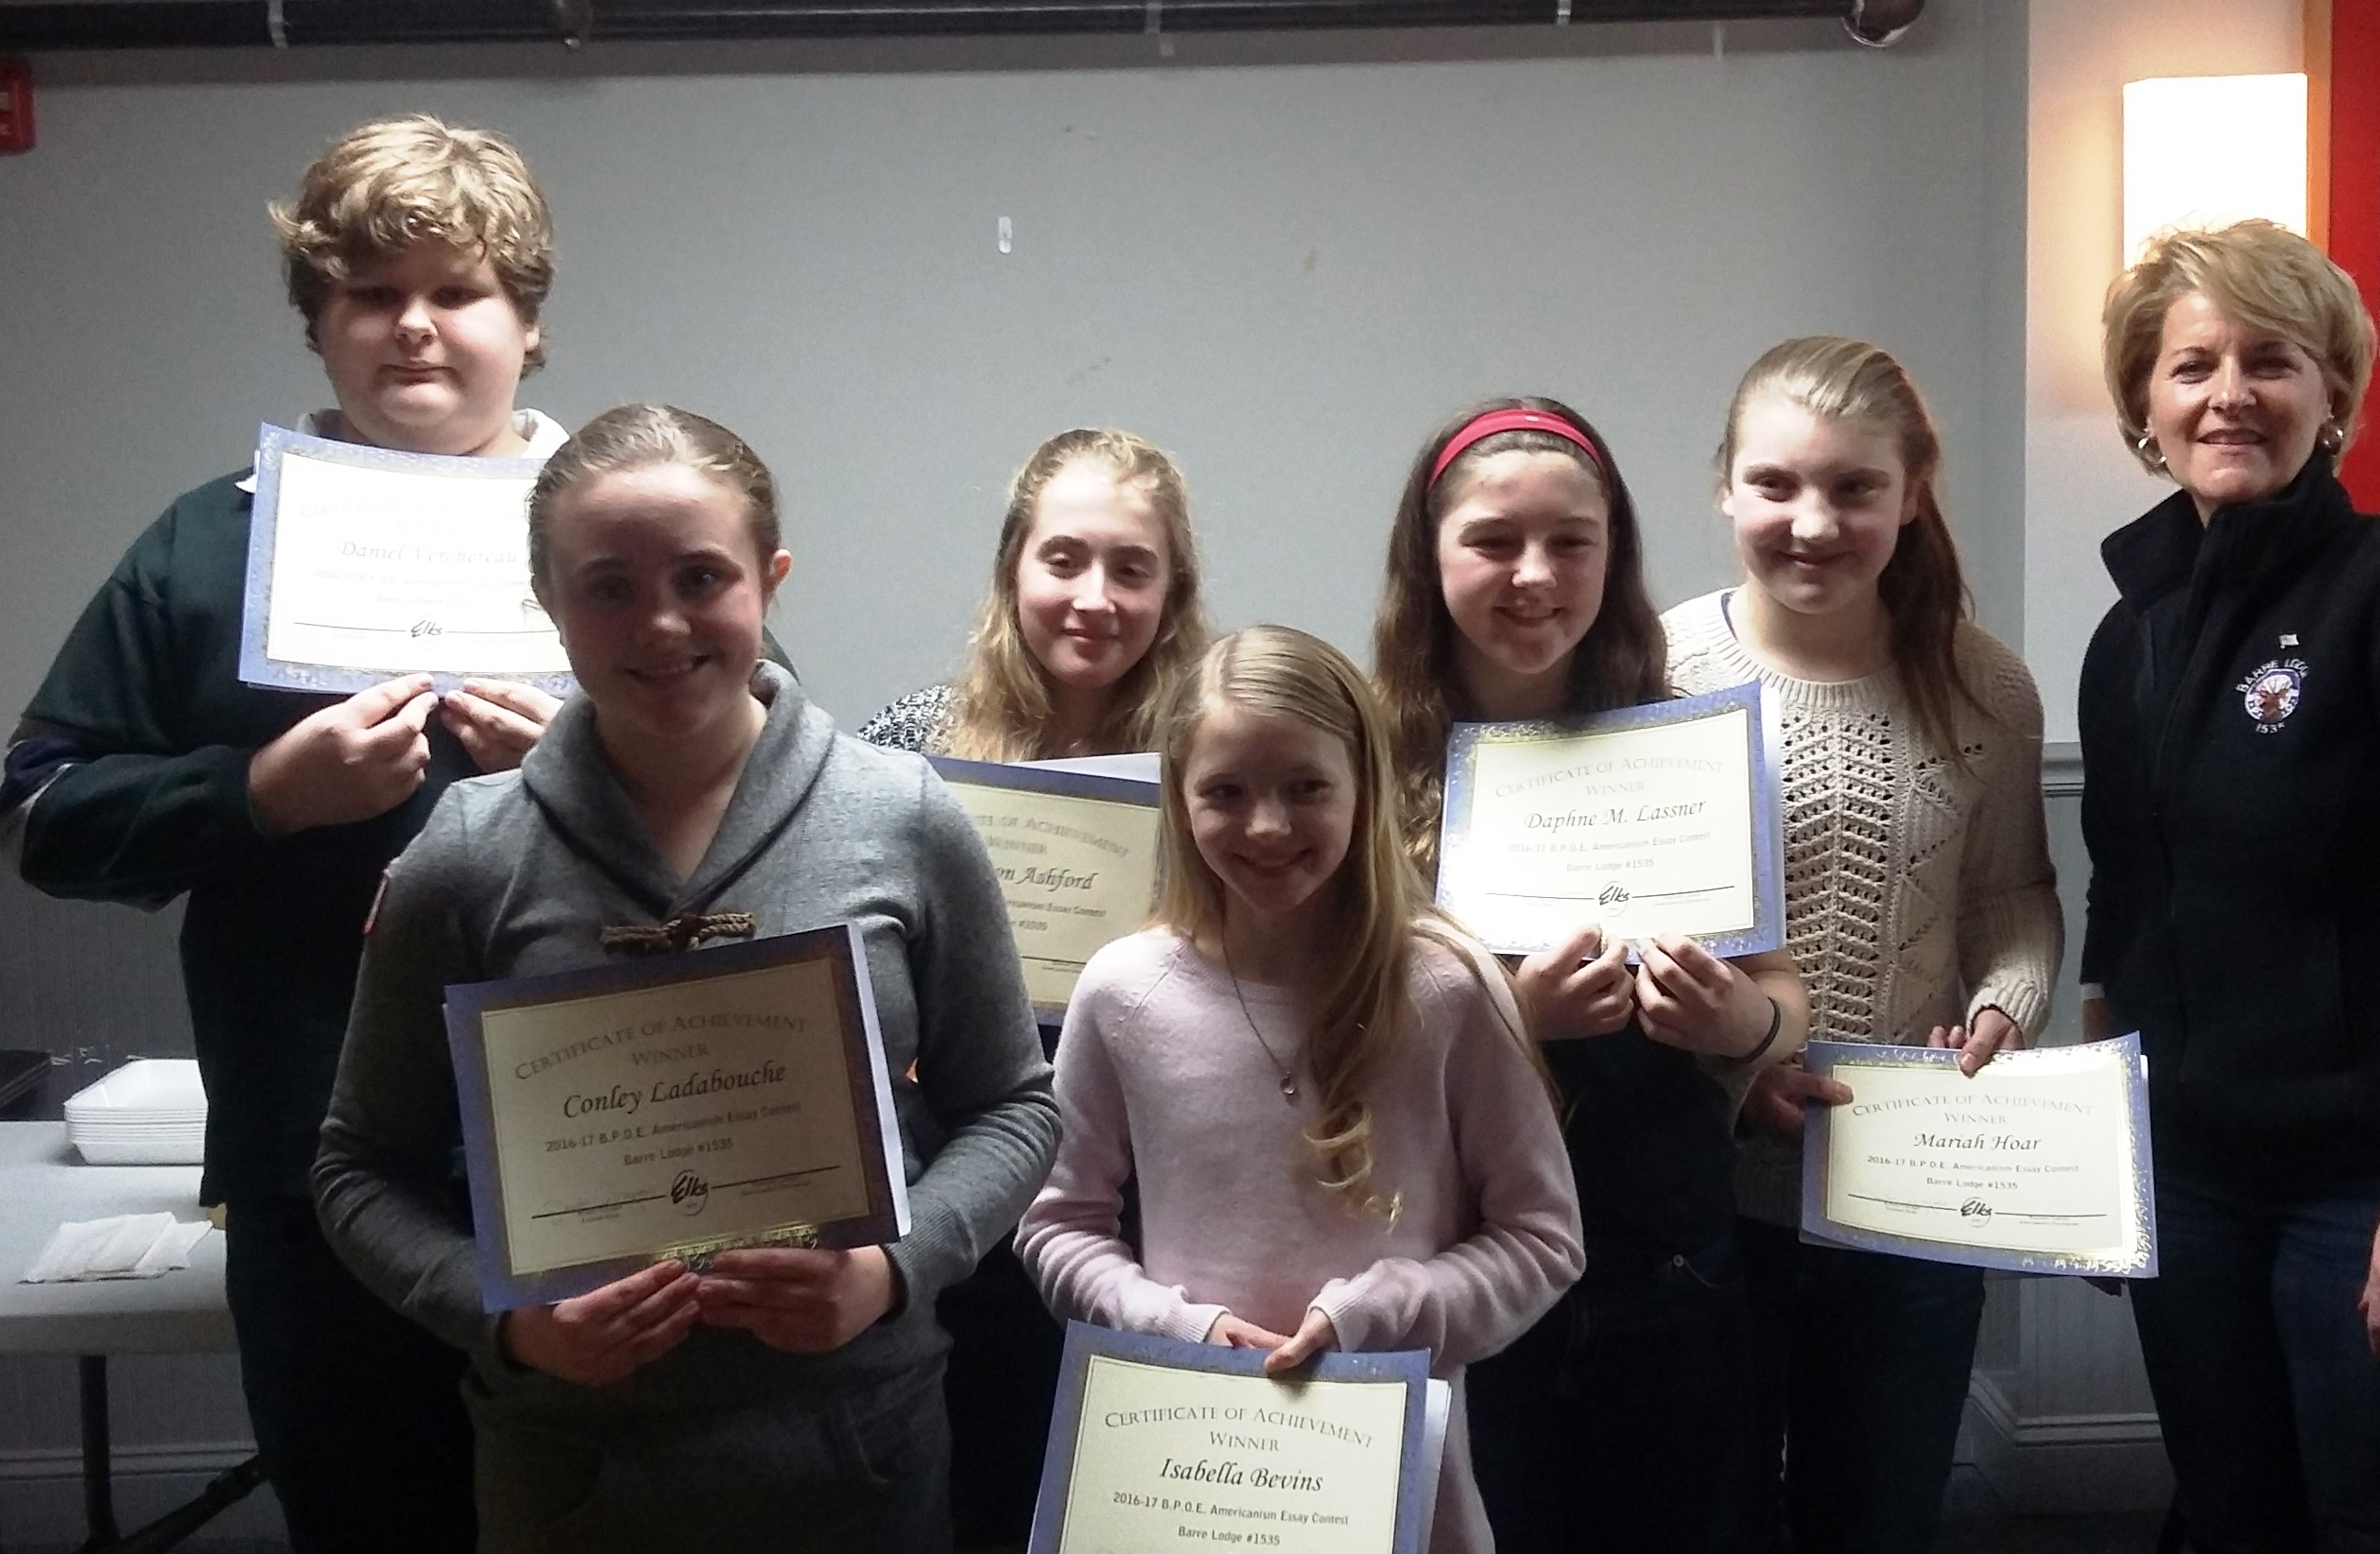 barre elks lodge welcomed six americanism essay winners the certificates